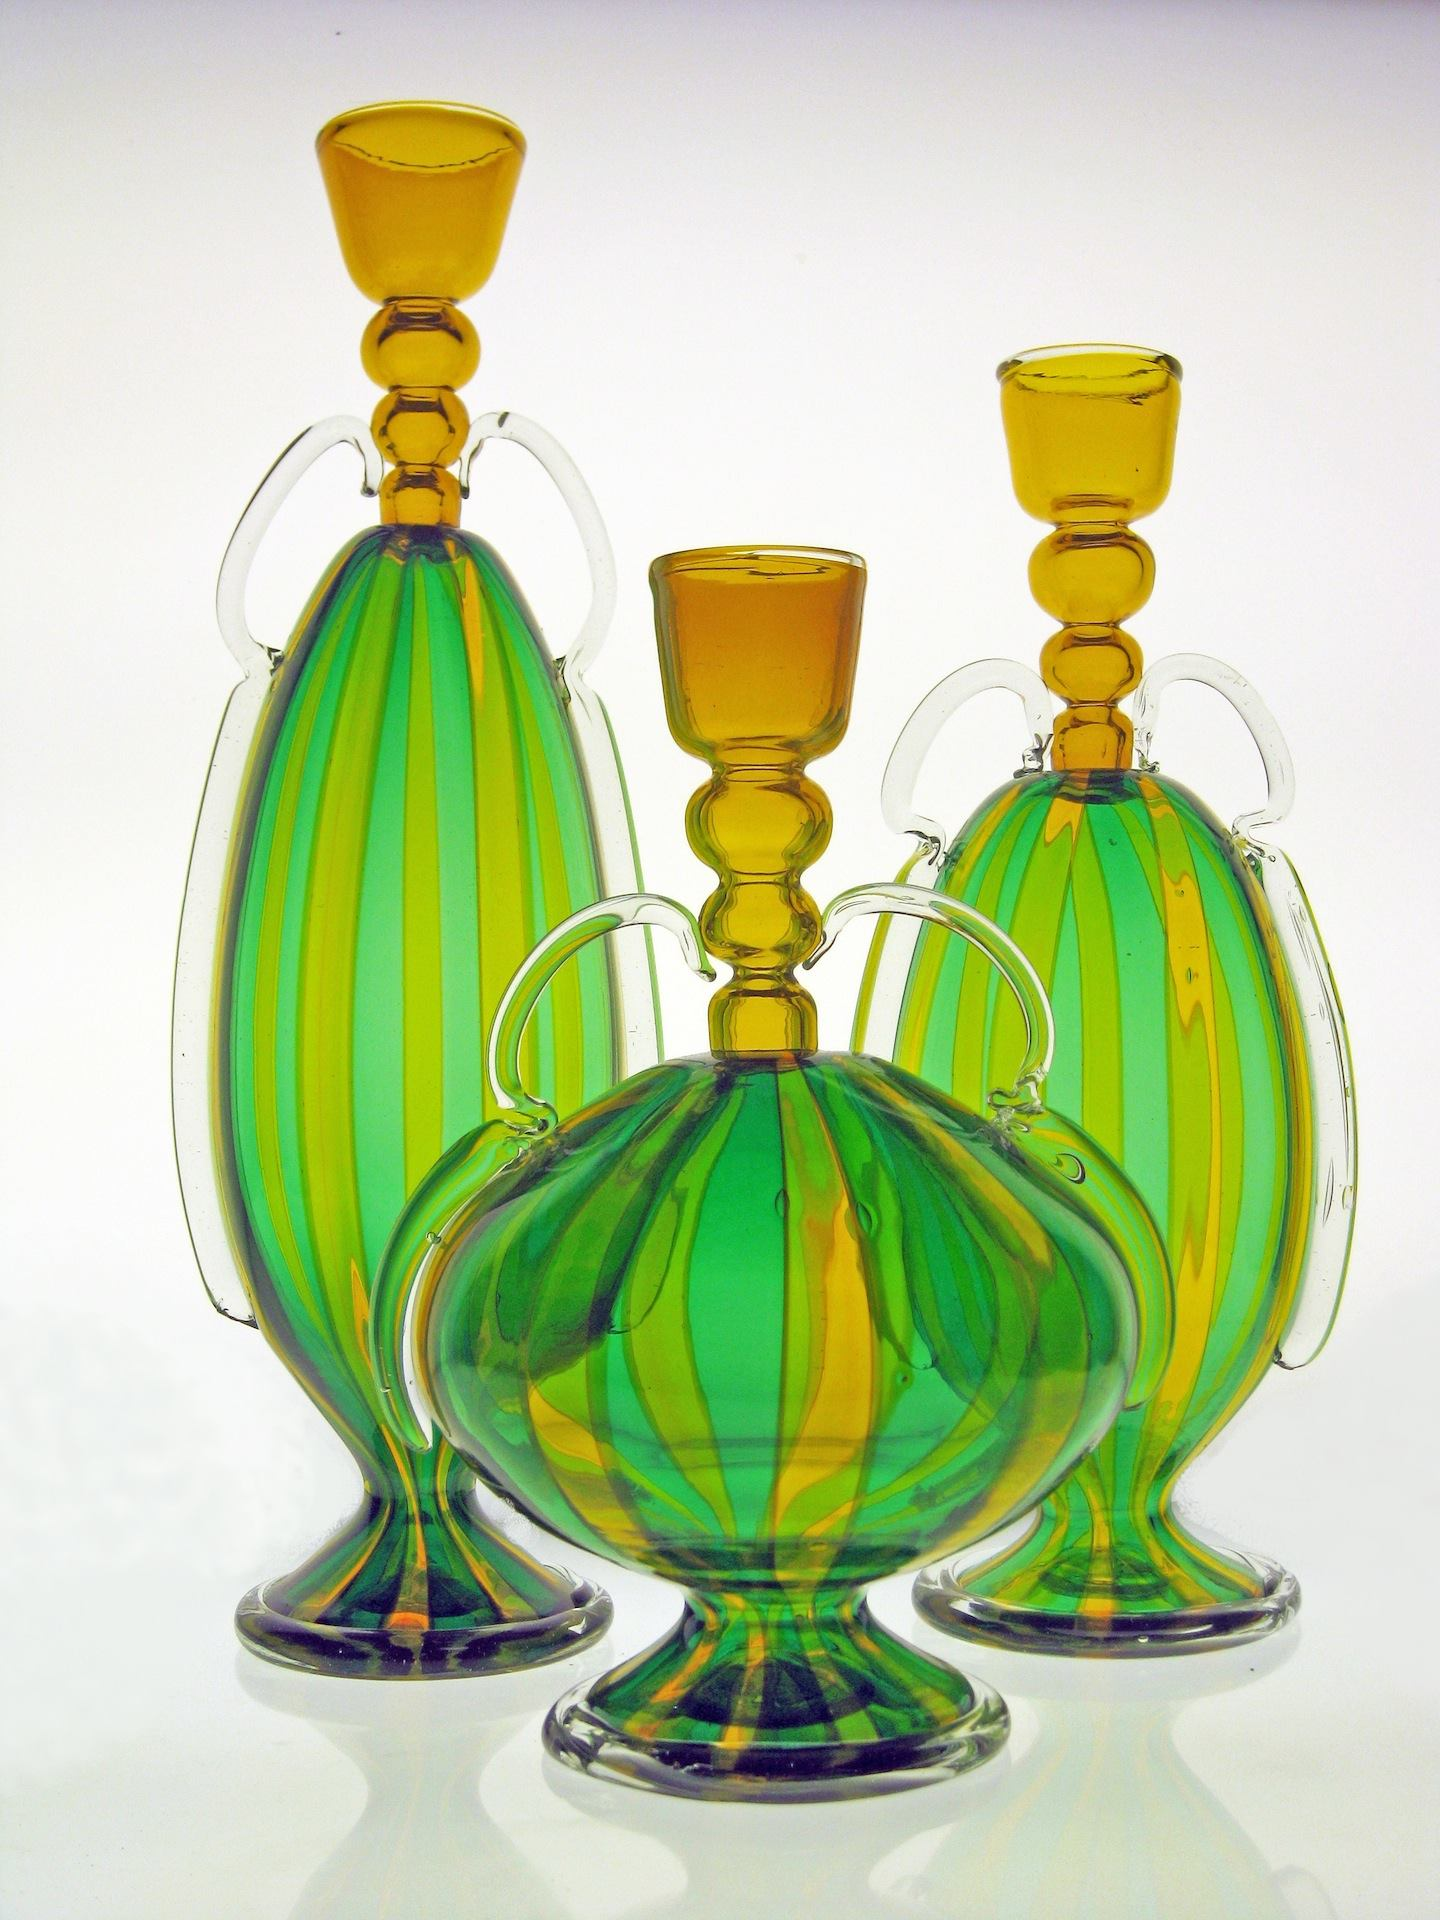 Venetian Glass by Matthew Urban